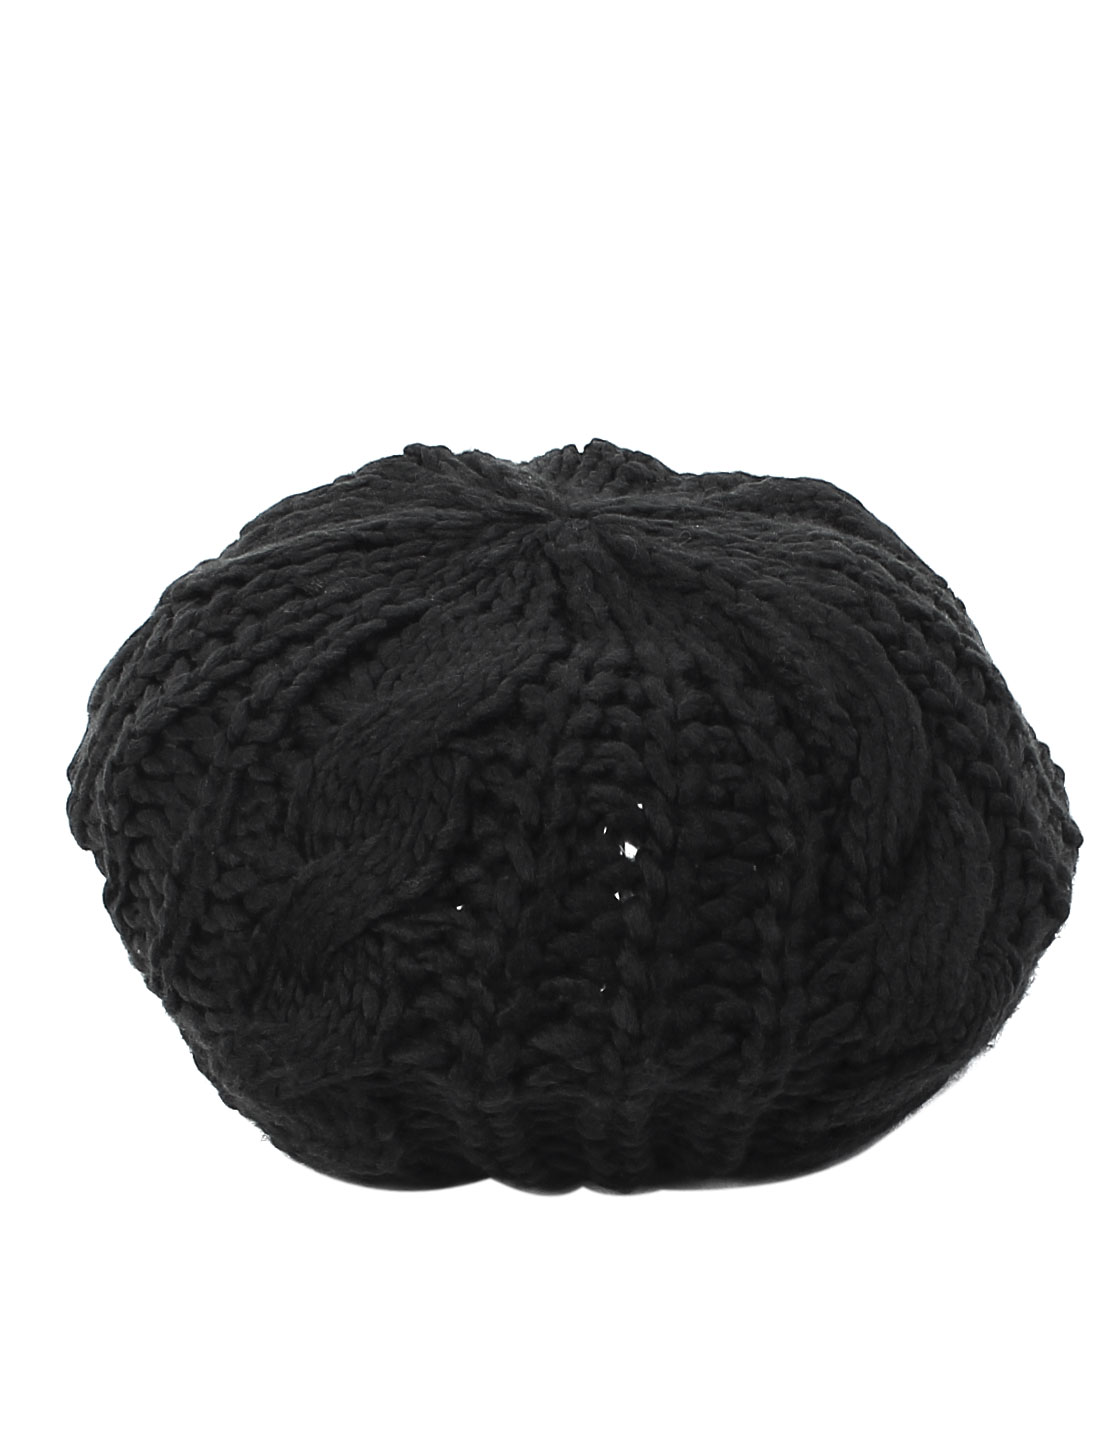 Lady Fashion Winter Warm Soft Knitted Crochet Baggy Beret Hat Beanie Cap Black